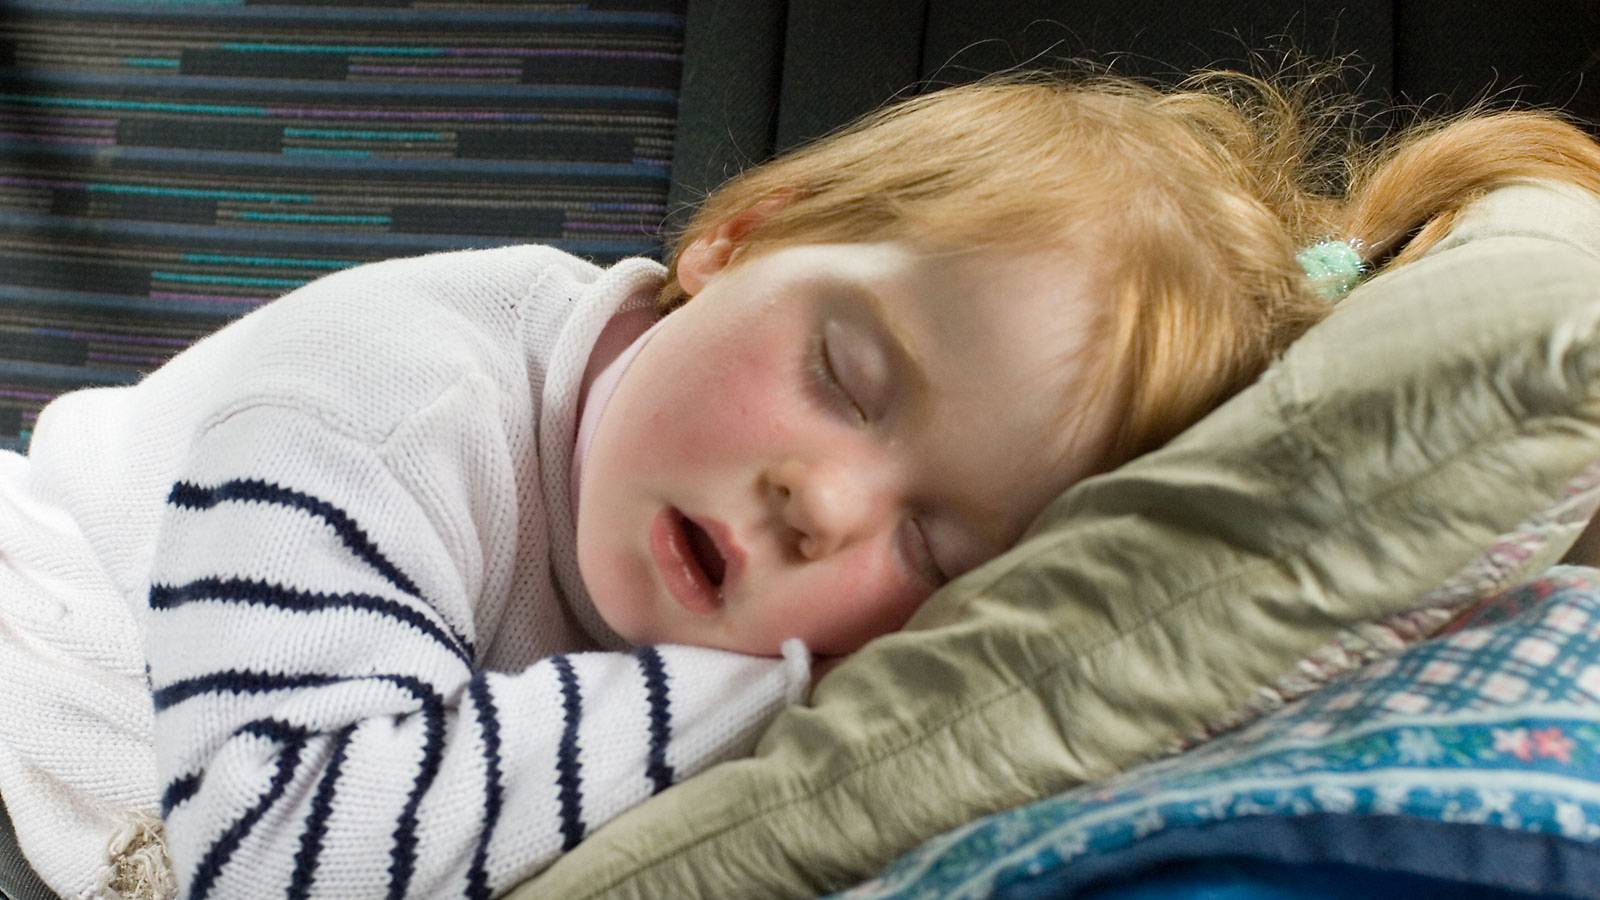 Tots-3-simple-steps-to-tell-if-your-child-has-Obstructive-Sleep-Apnea-2